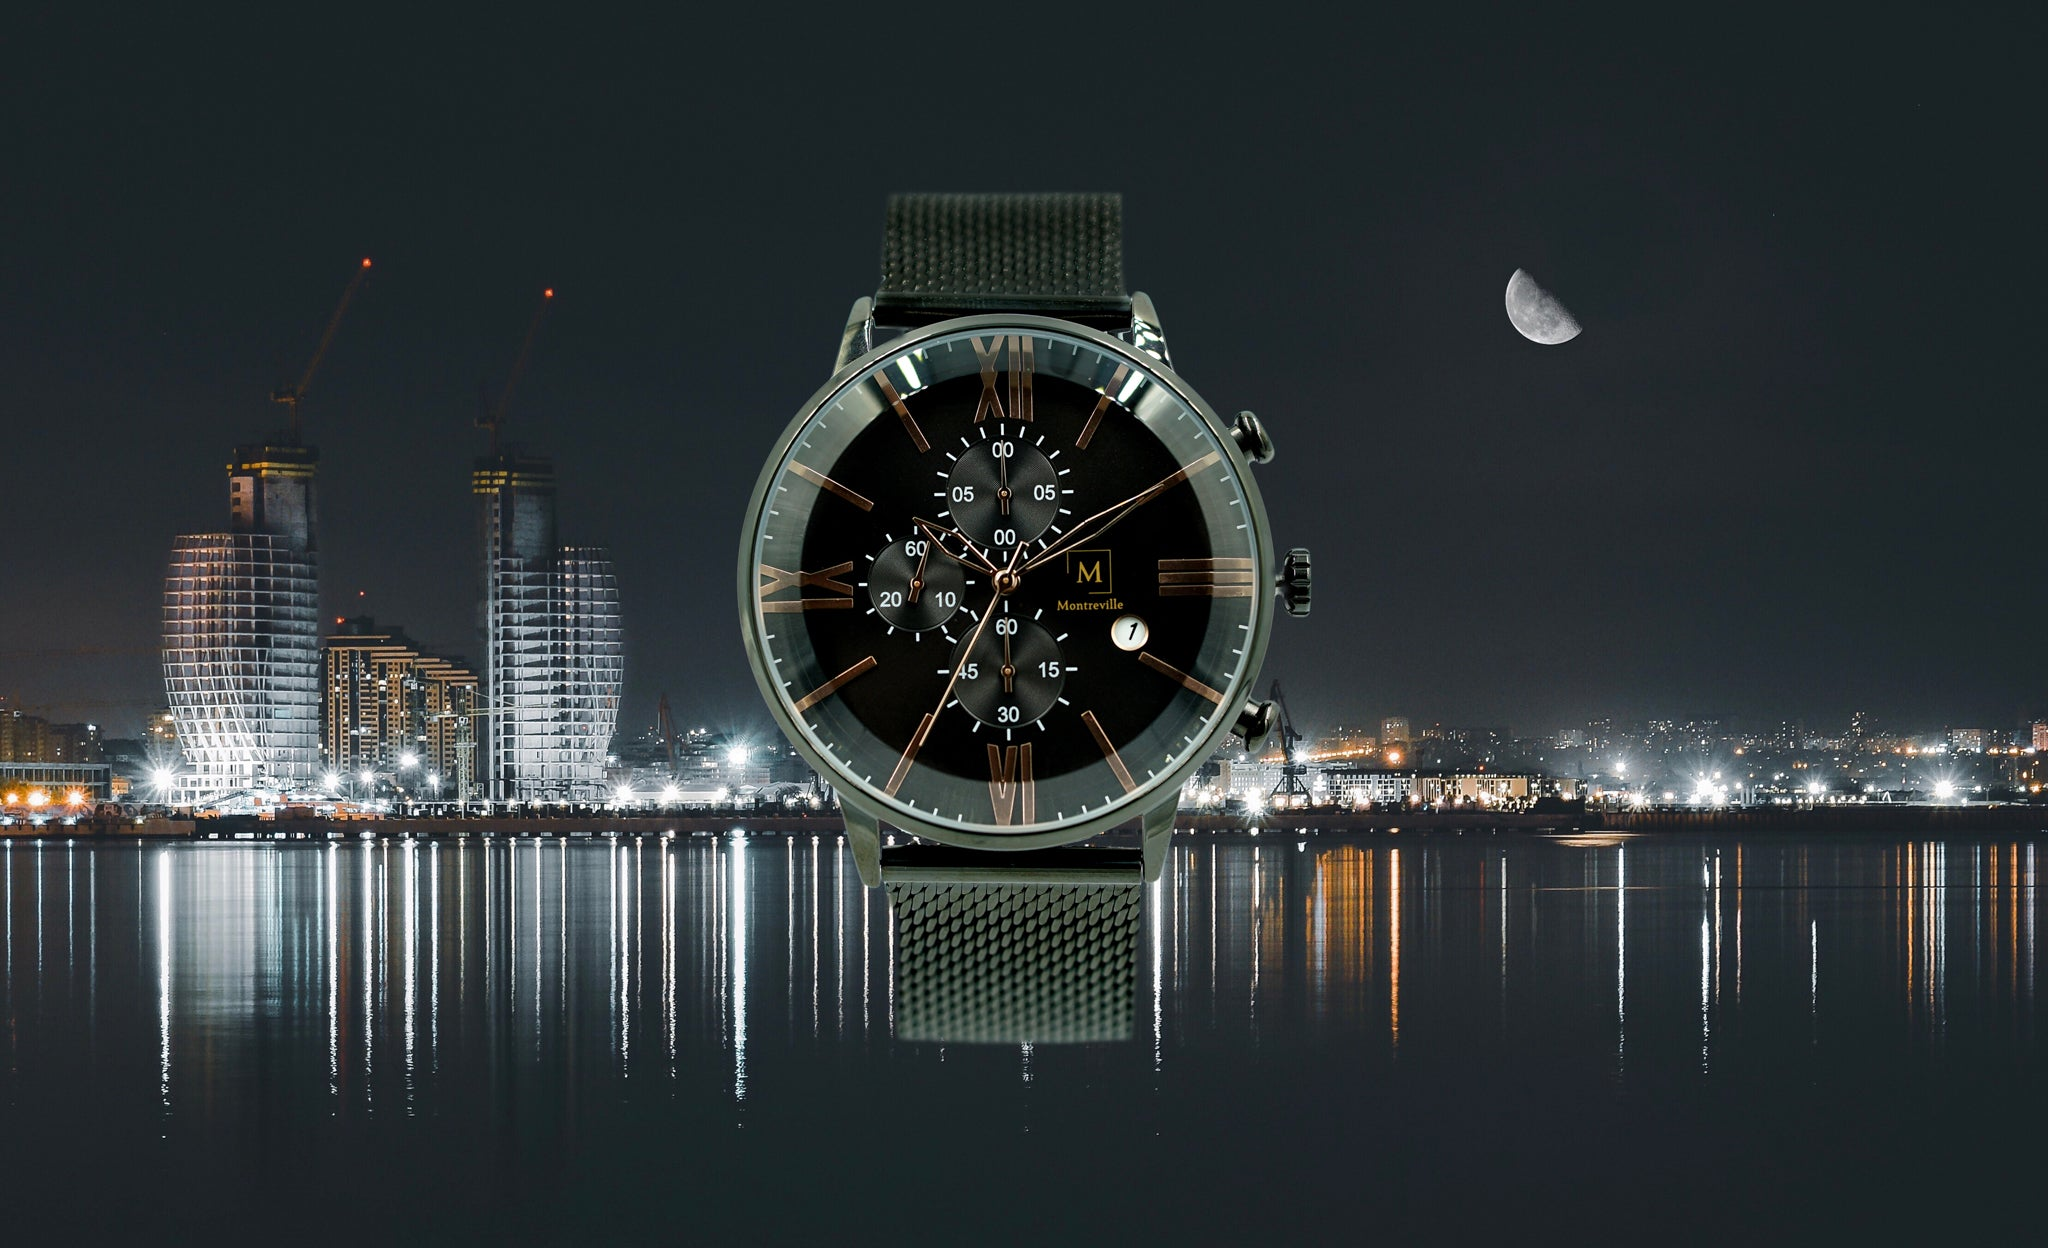 Black watch called Baku from the brand Montreville. This is an image of the watch with a picture of the city of Baku at night in the background. The timepiece has a unique design with a large glass, roman numerals in rosé gold, a stopwatch and date. The Baku timepiece has a mesh strap in black.